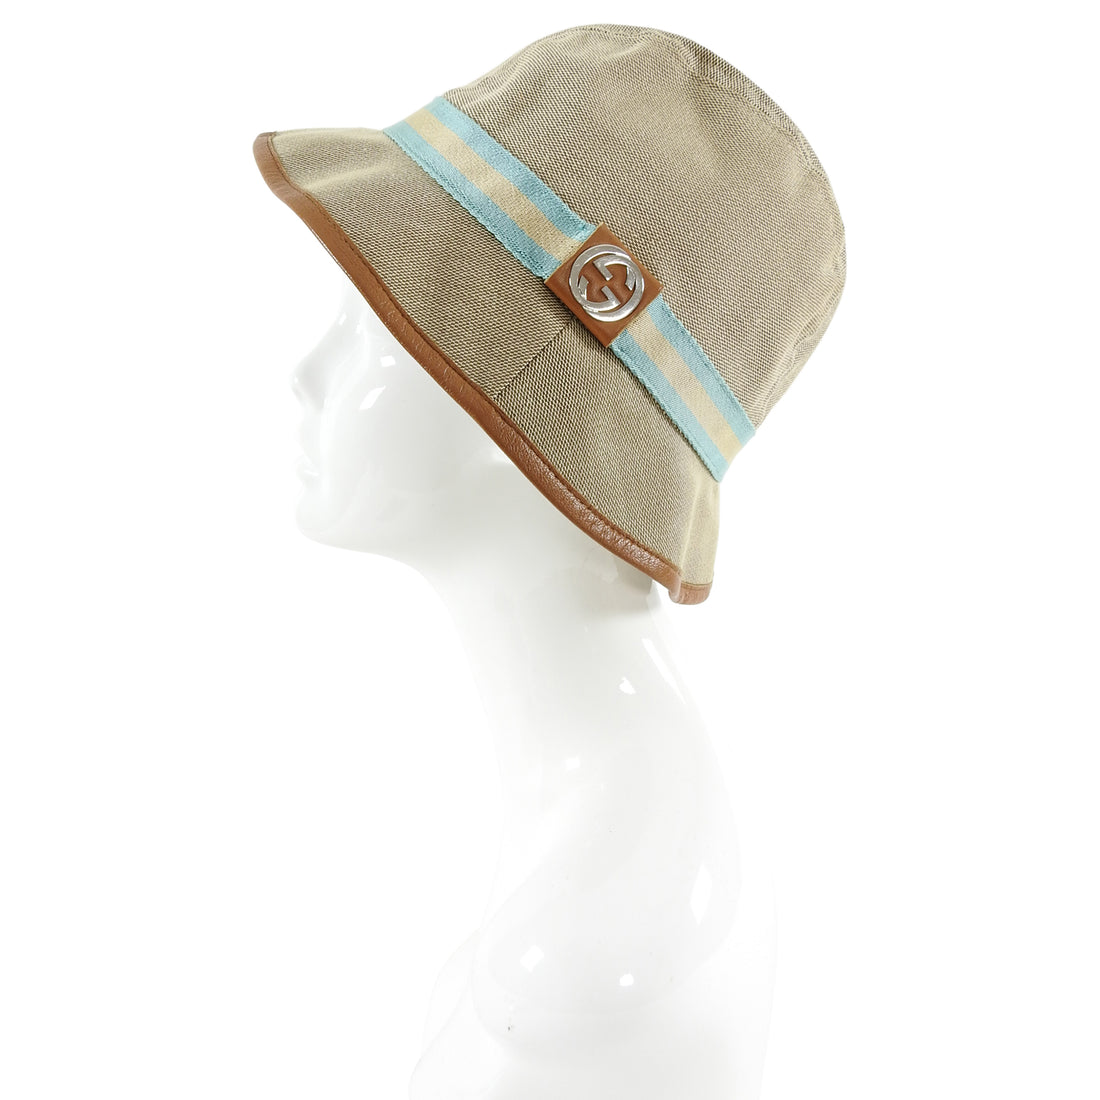 Gucci Beige GG Logo Web Stripe Bucket Hat - S